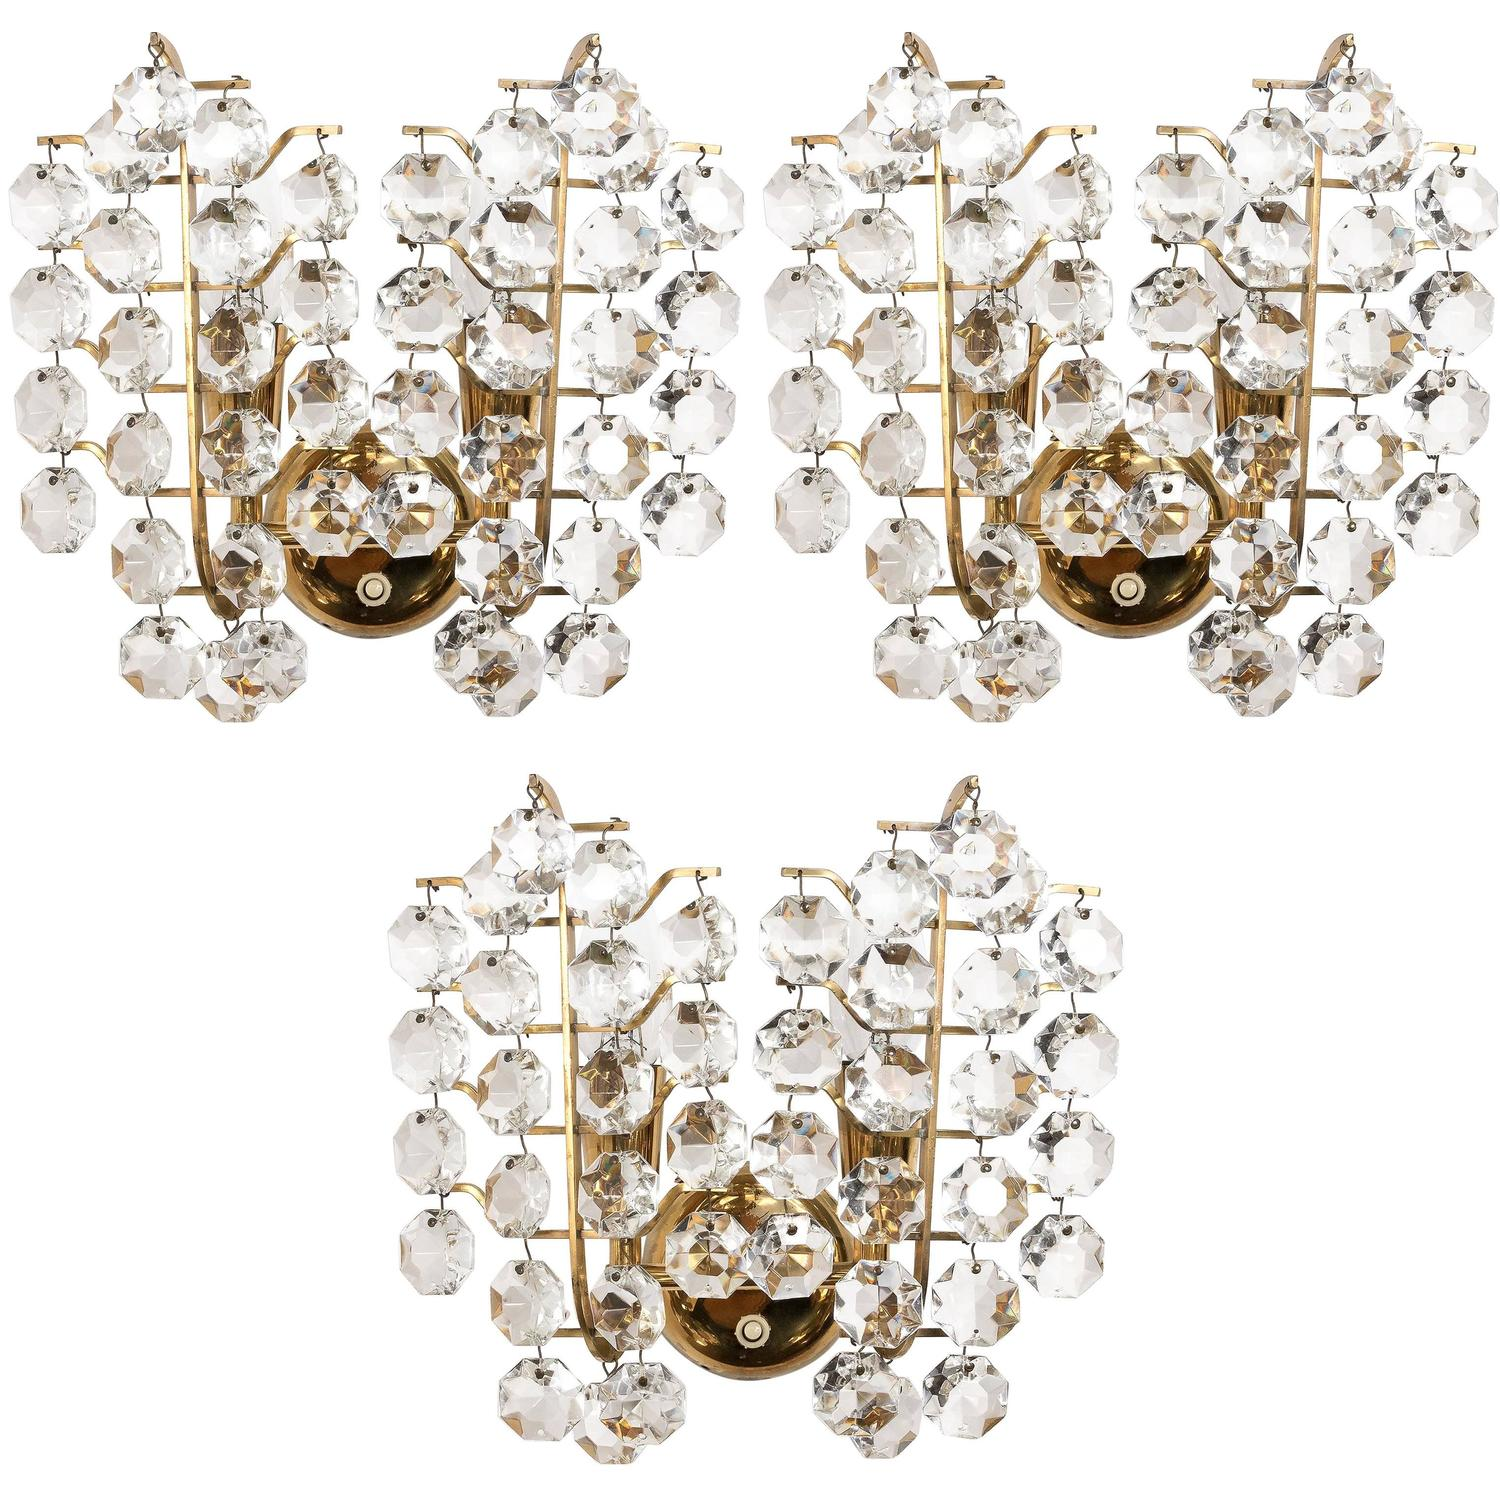 Bakalowits Sconces Wall Lights, Brass Crystal Glass, 1960s